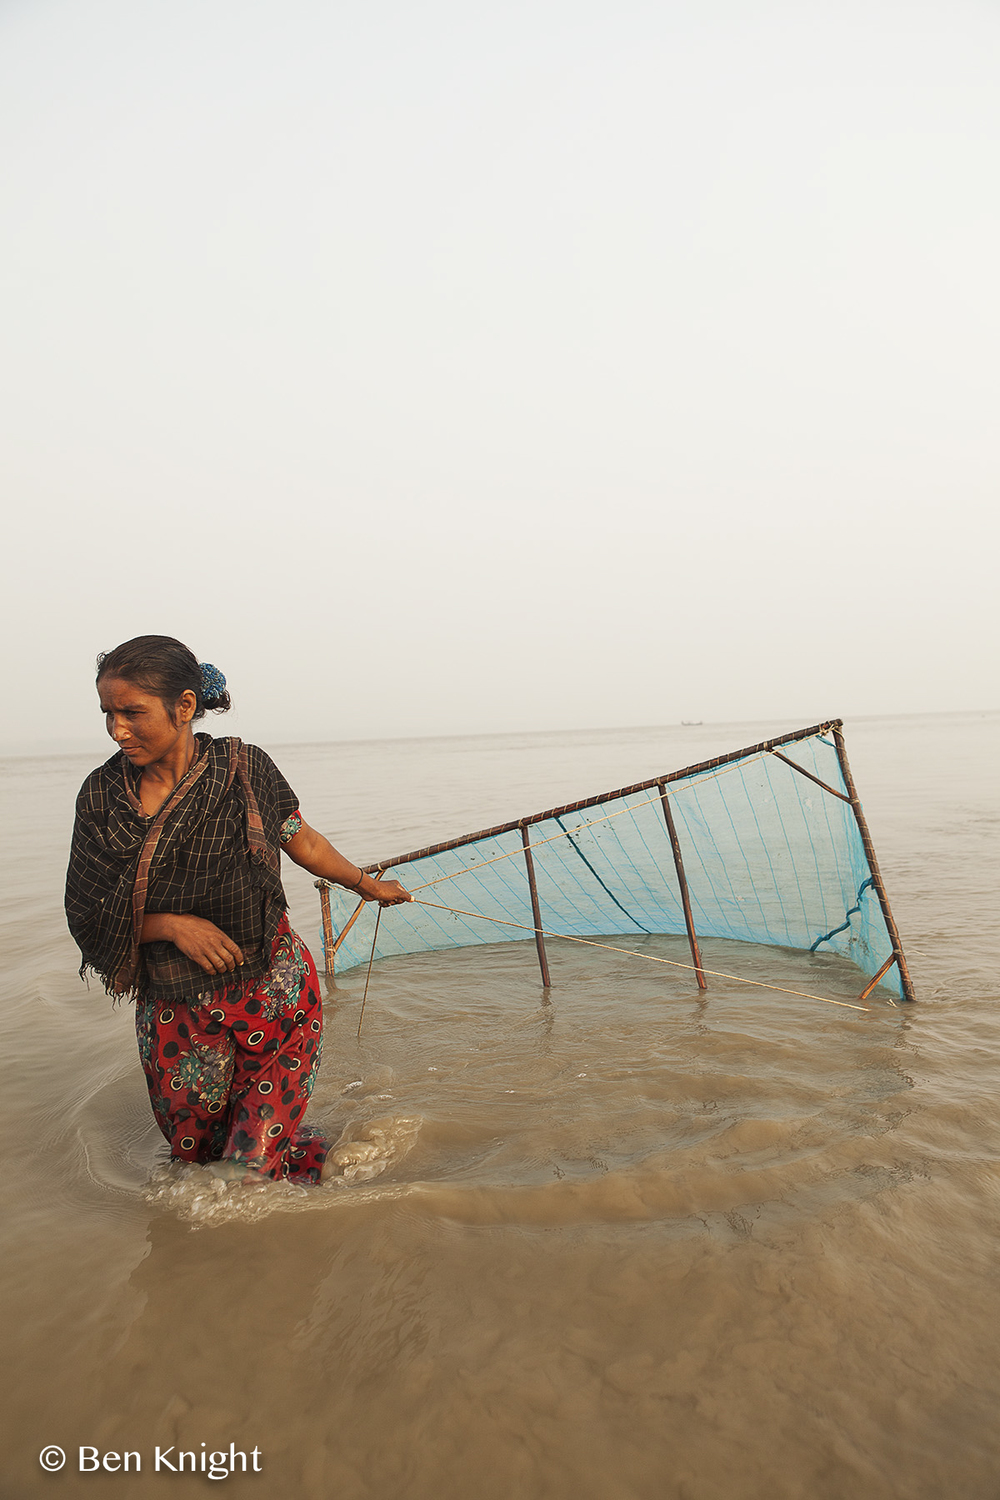 Joymoni, Bangladesh. Fairtrade in the shrimp industry.